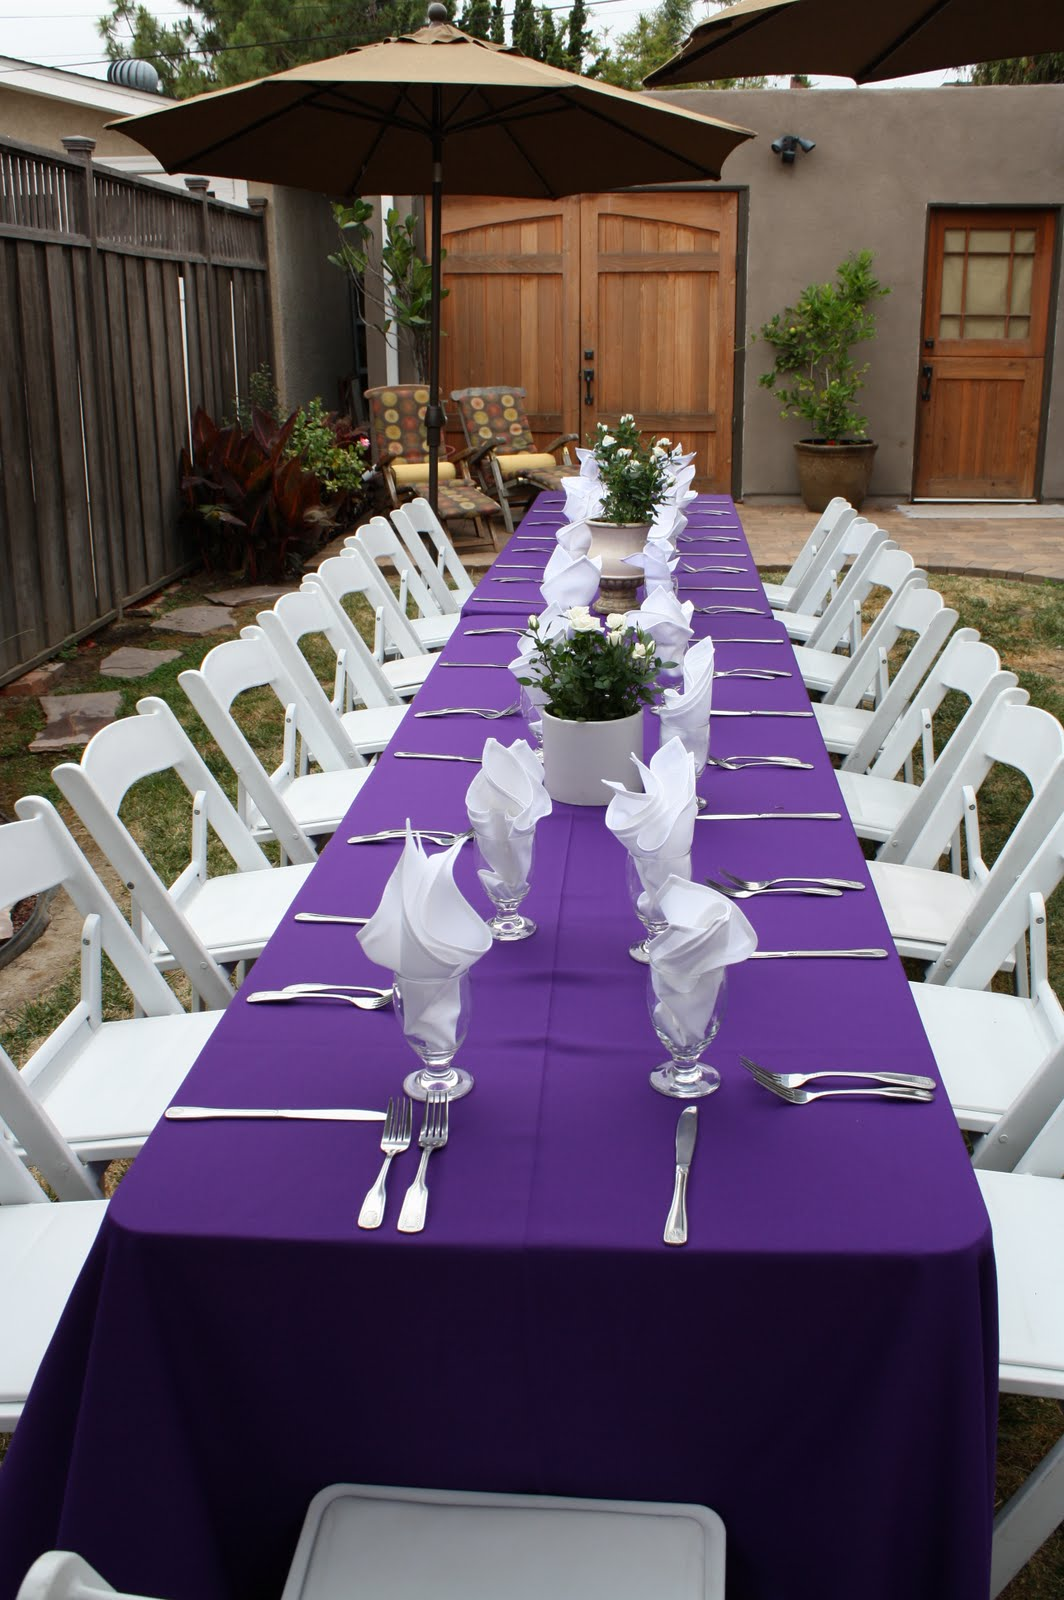 Party Productions Banquet Tables Make For An Intimate